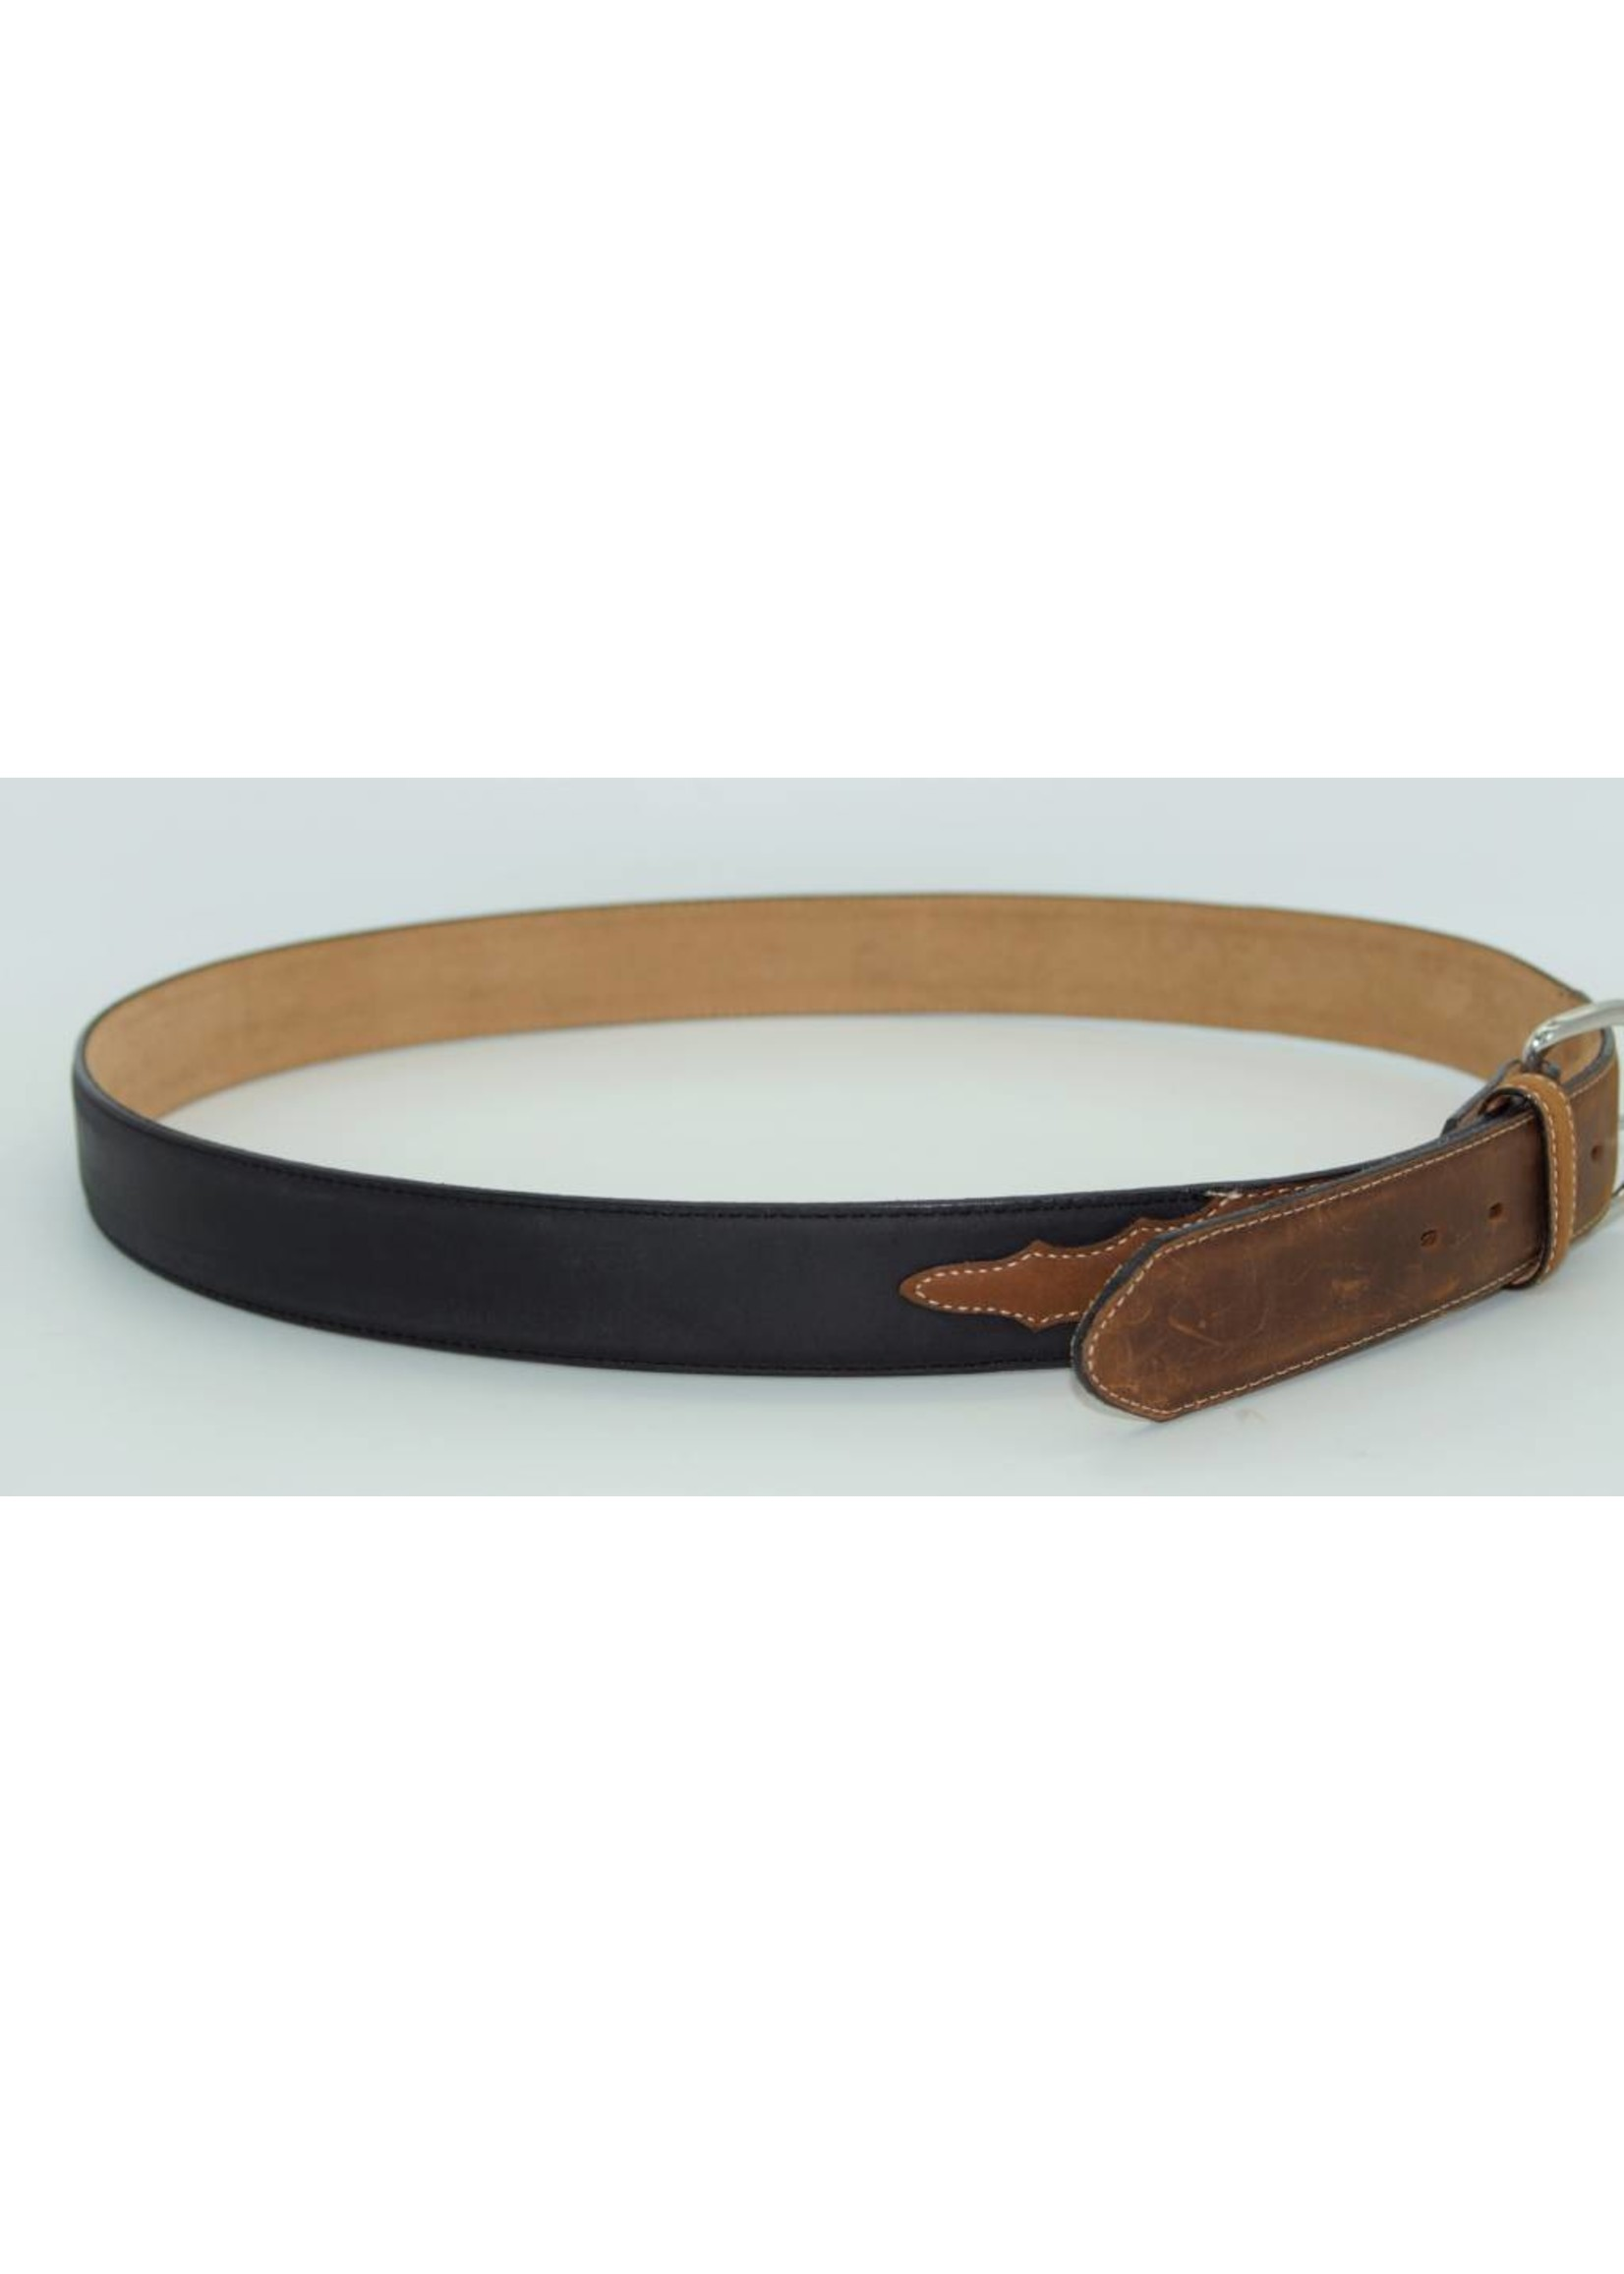 Justin MEN'S BLACK/BROWN BELT X5400